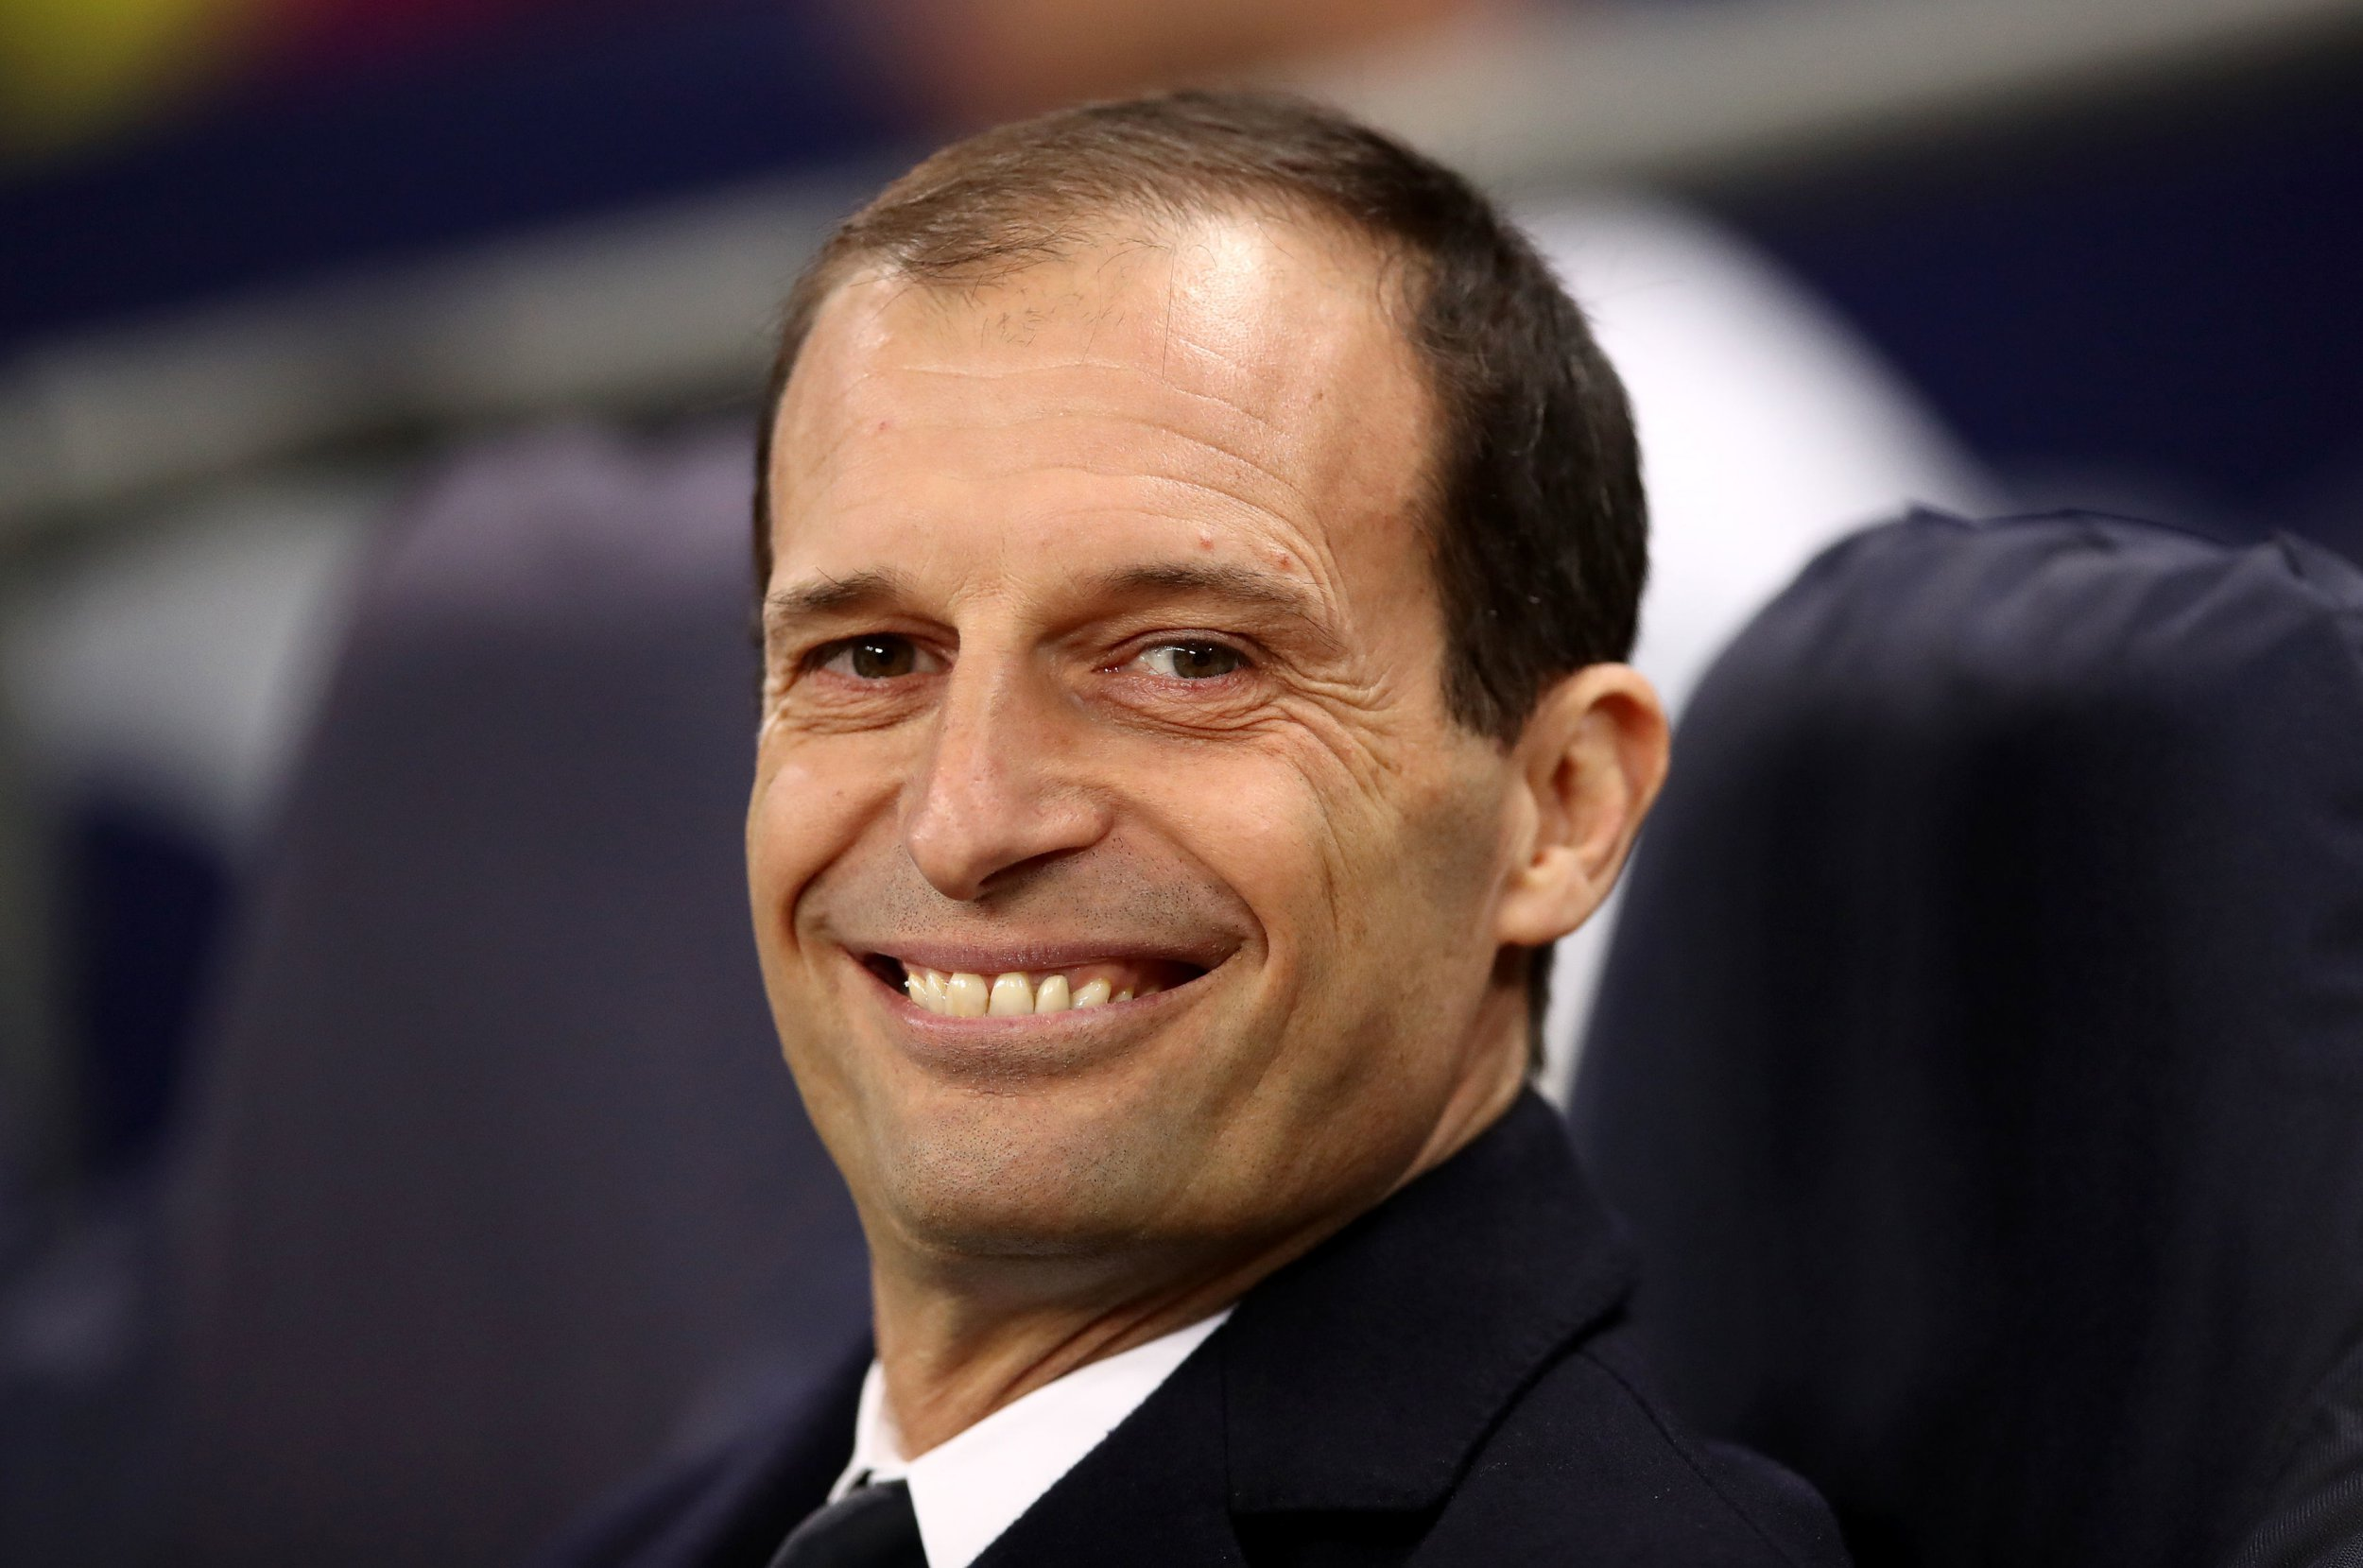 File photo dated 07-03-2018 of Juventus manager Massimiliano Allegri. PRESS ASSOCIATION Photo. Issue date: Tuesday May 15, 2018. Juventus are optimistic of keeping hold of coach Massimiliano Allegri as rumours he will replace Arsene Wenger at Arsenal cool. See PA story SOCCER Arsenal. Photo credit should read John Walton/PA Wire